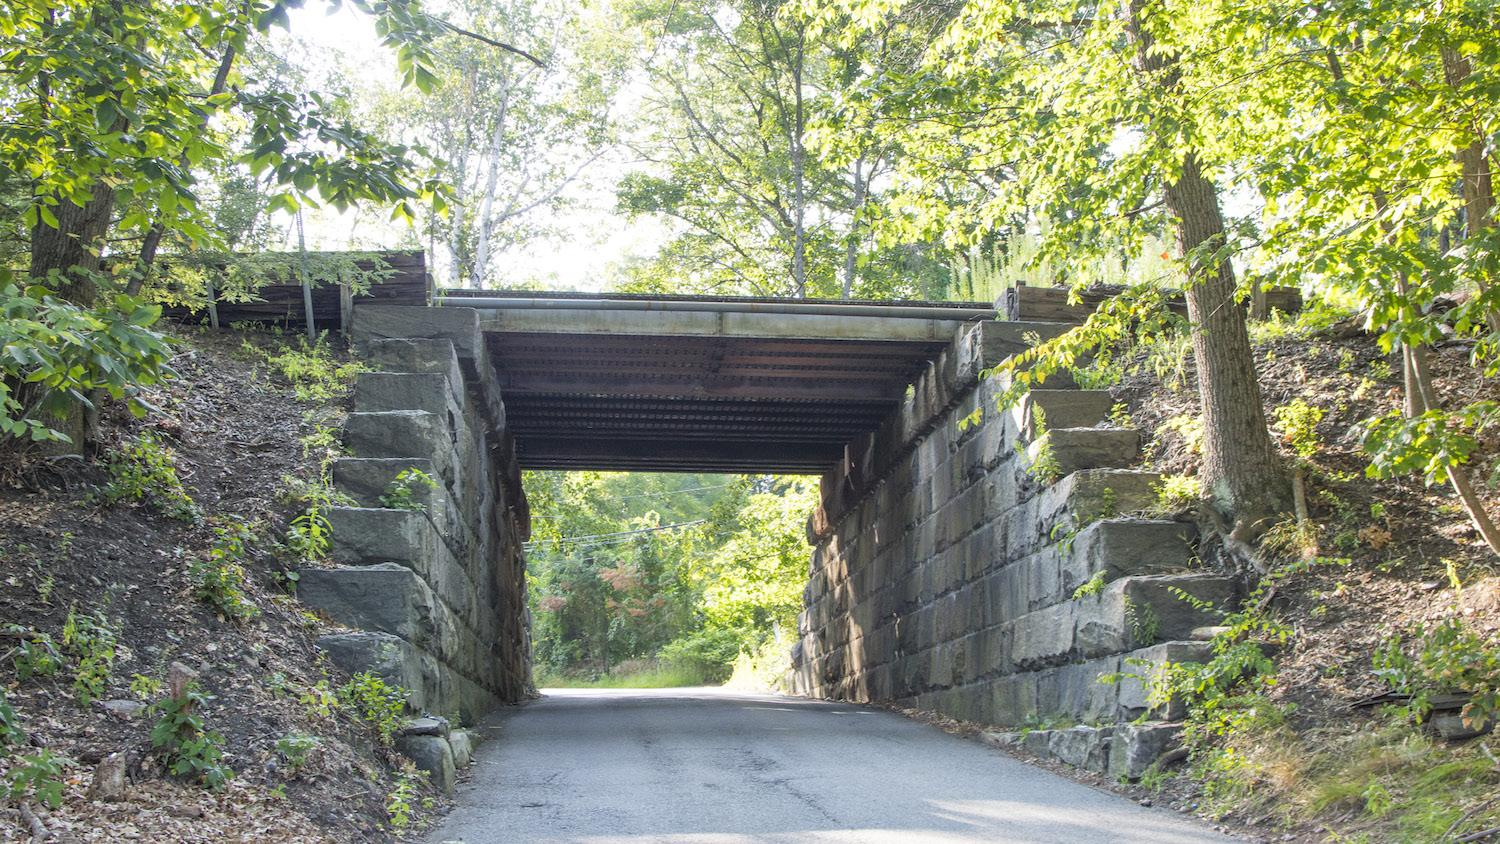 The existing bridge over Intervale Road is being replaced.